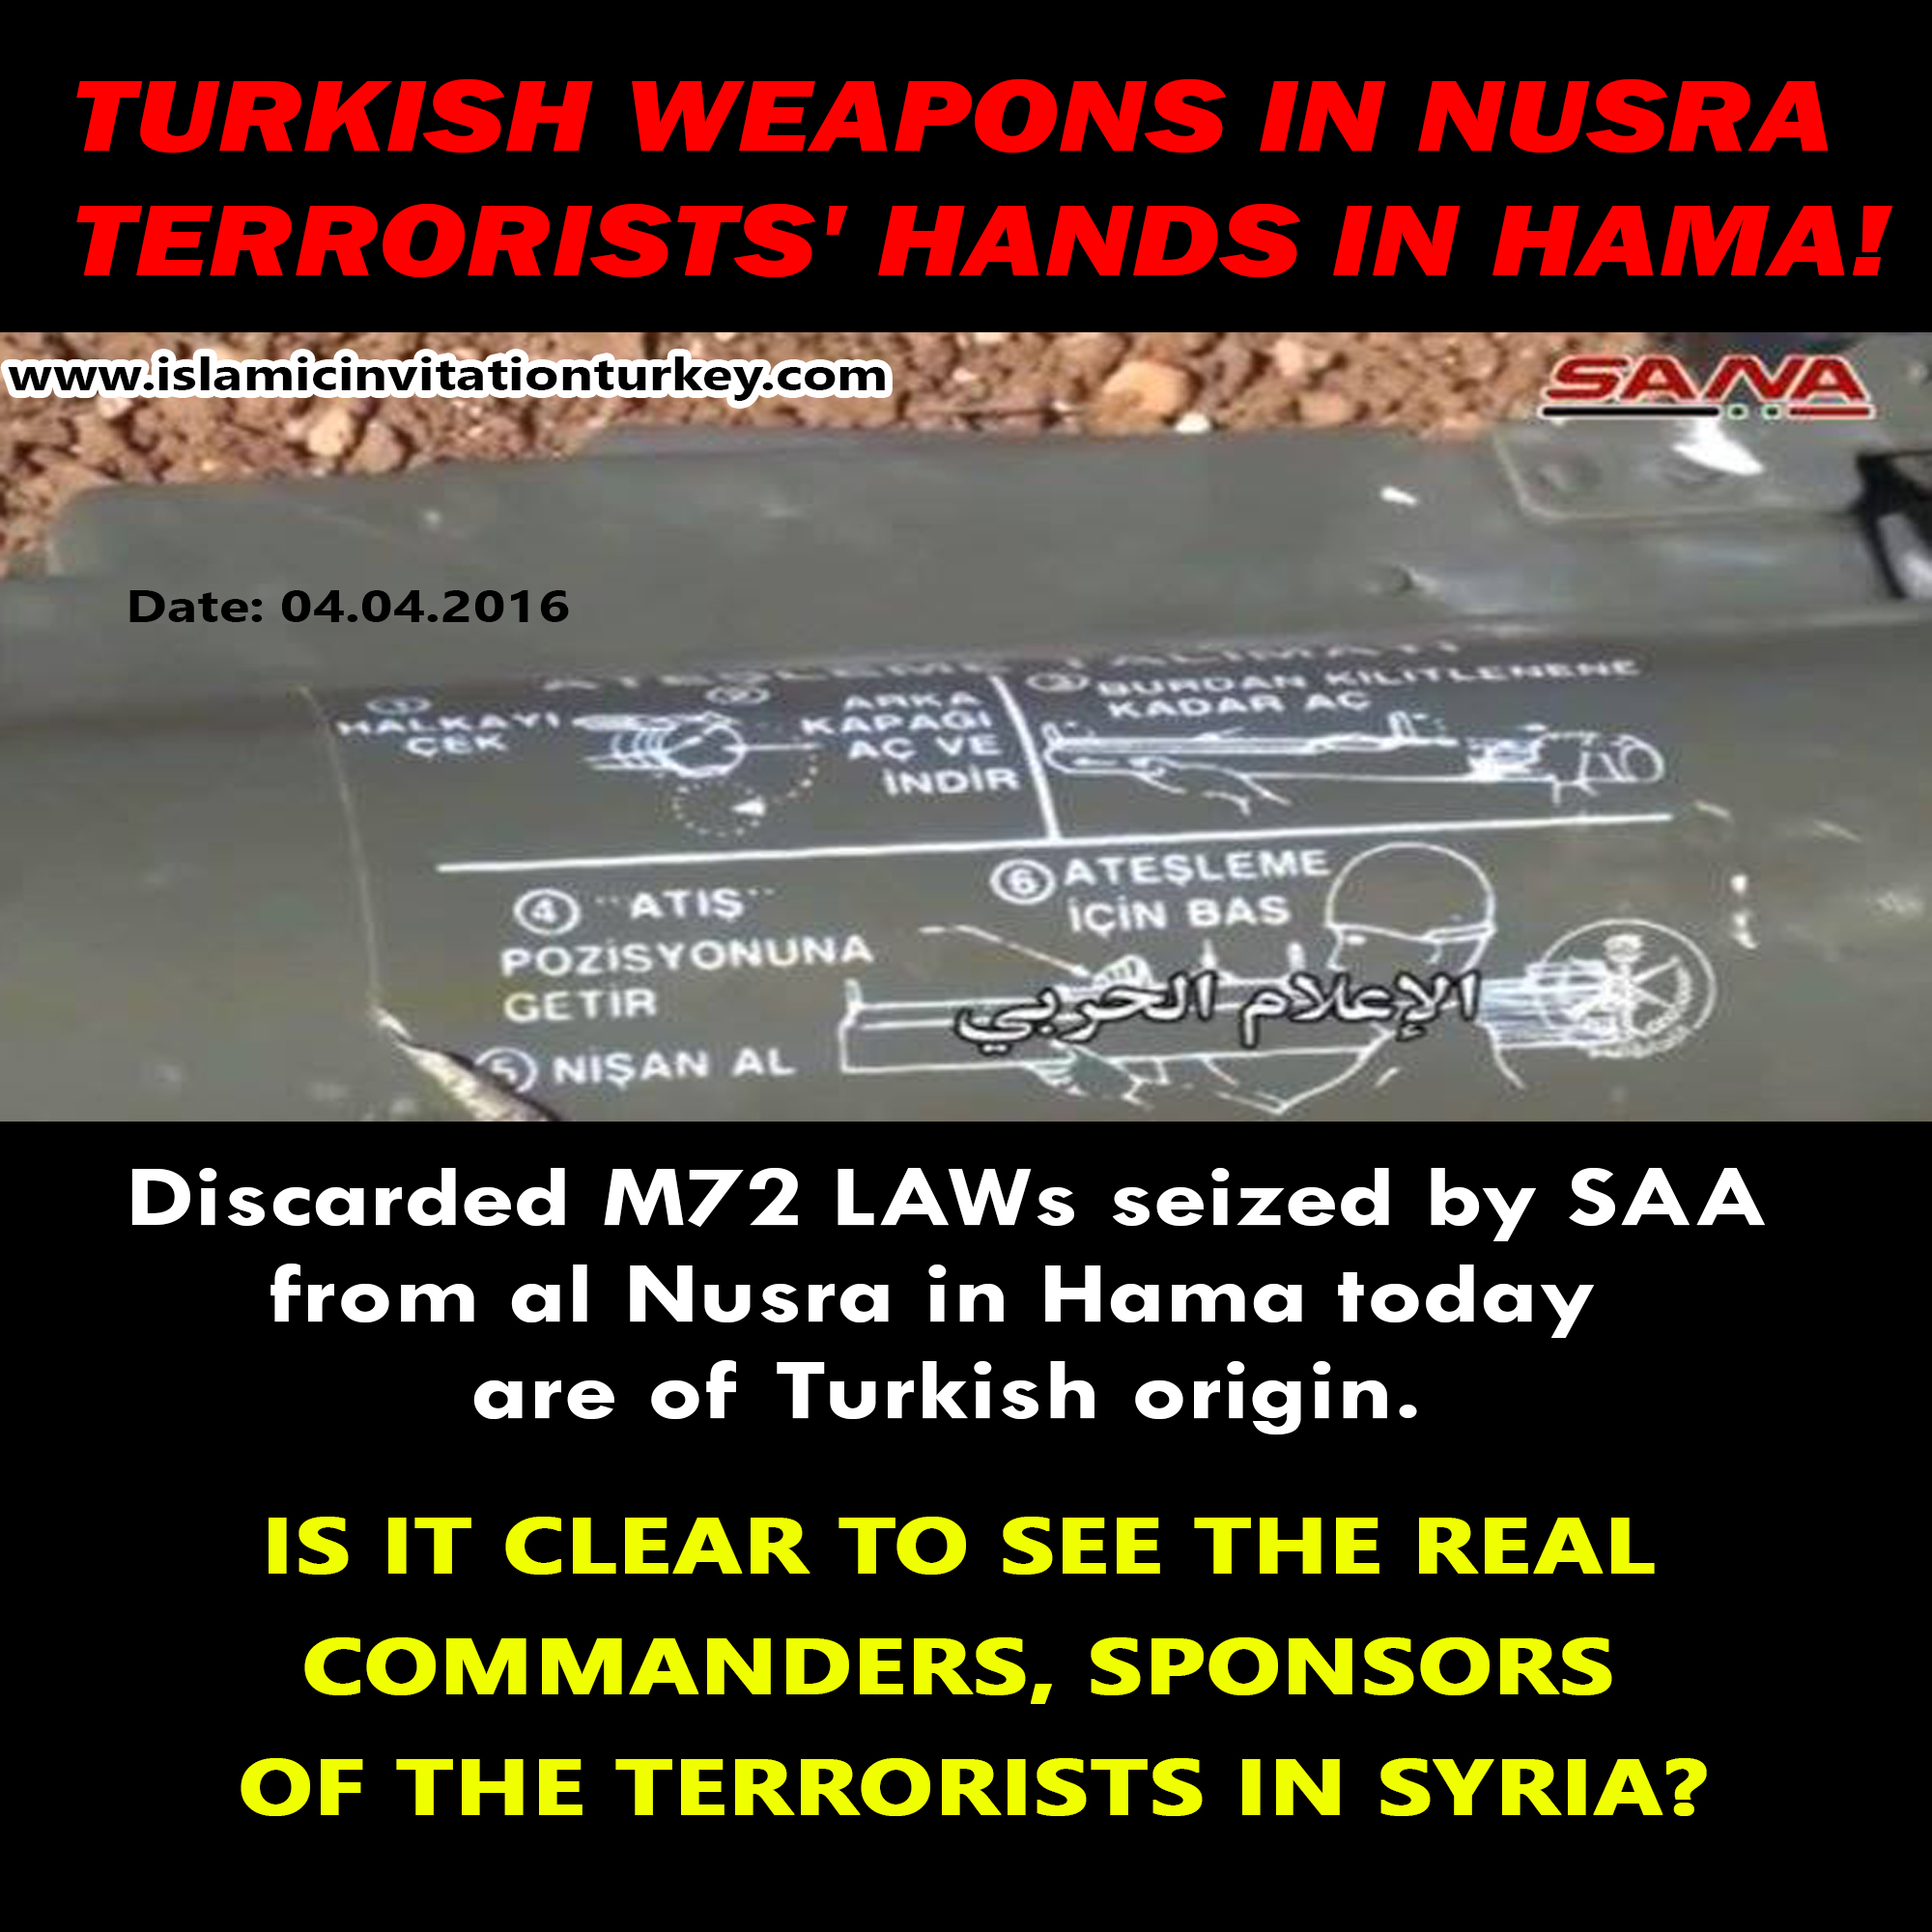 Photo of Syrian Army captured Turkish weapons in hands of Nusra in Hama